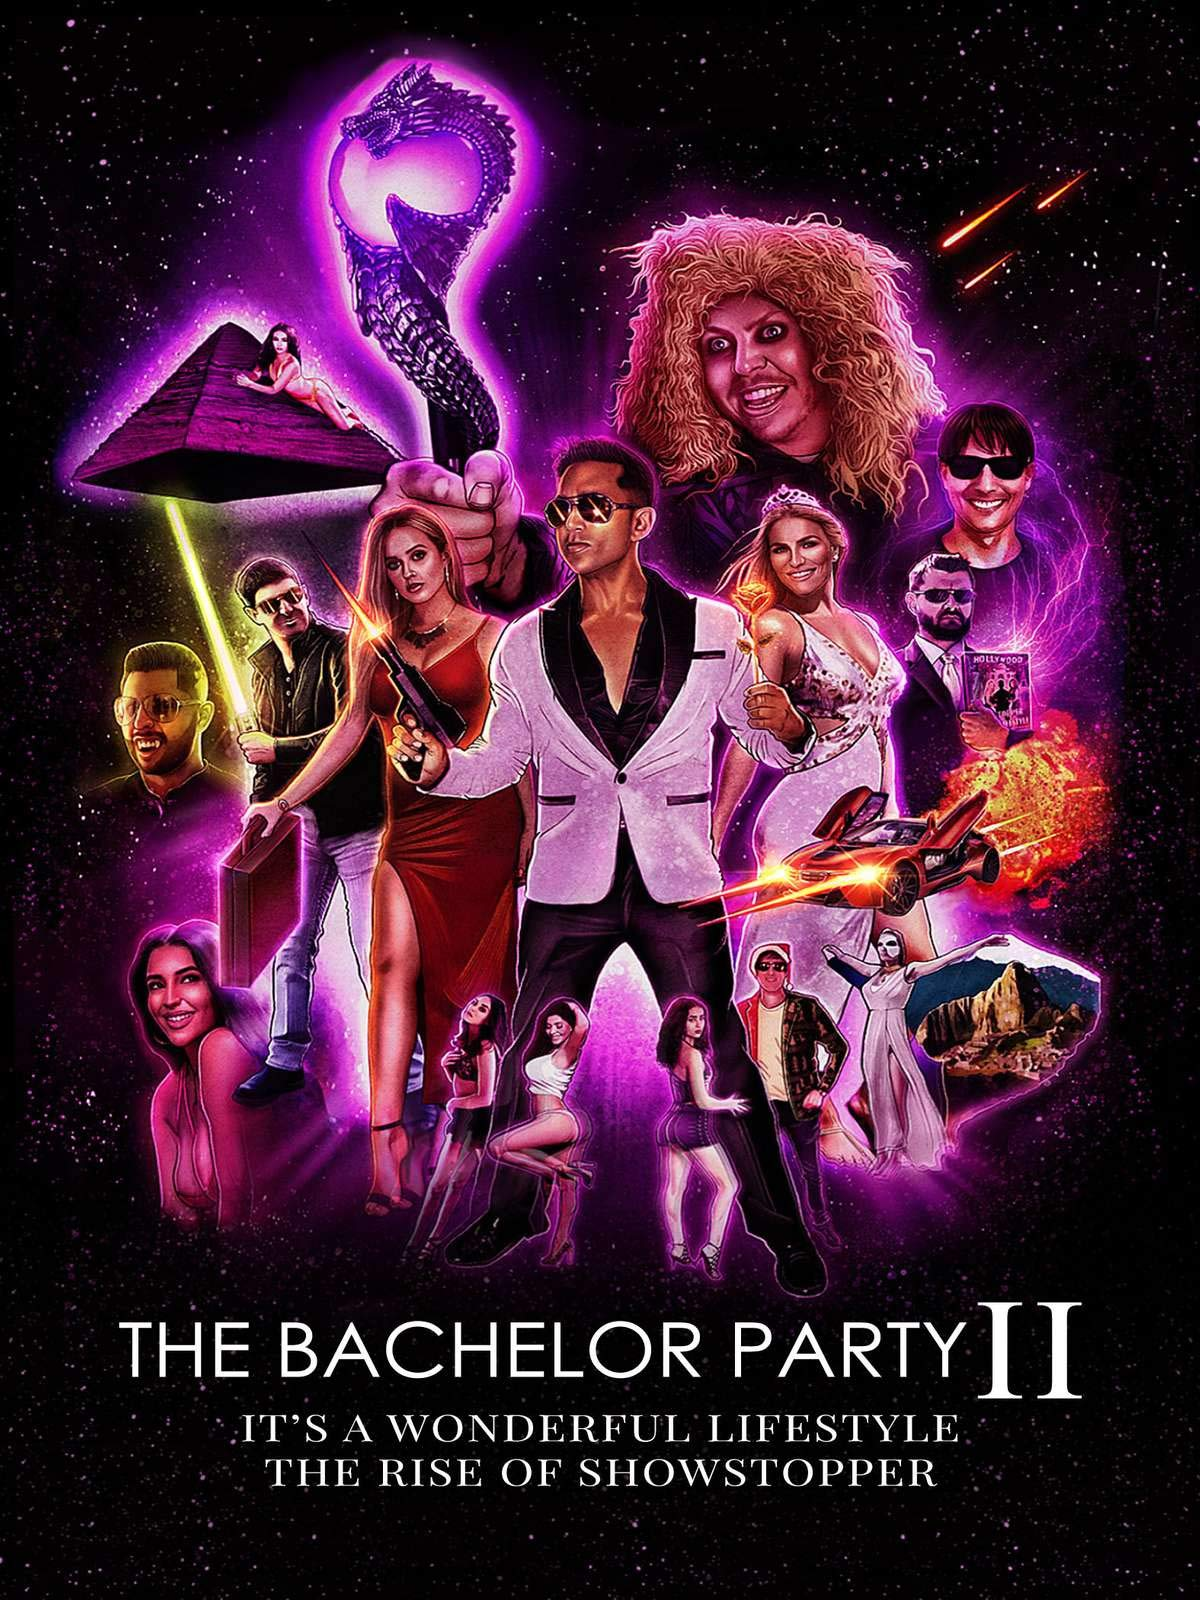 The Bachelor Party 2: It's a Wonderful Lifestyle - The Rise of Showstopper